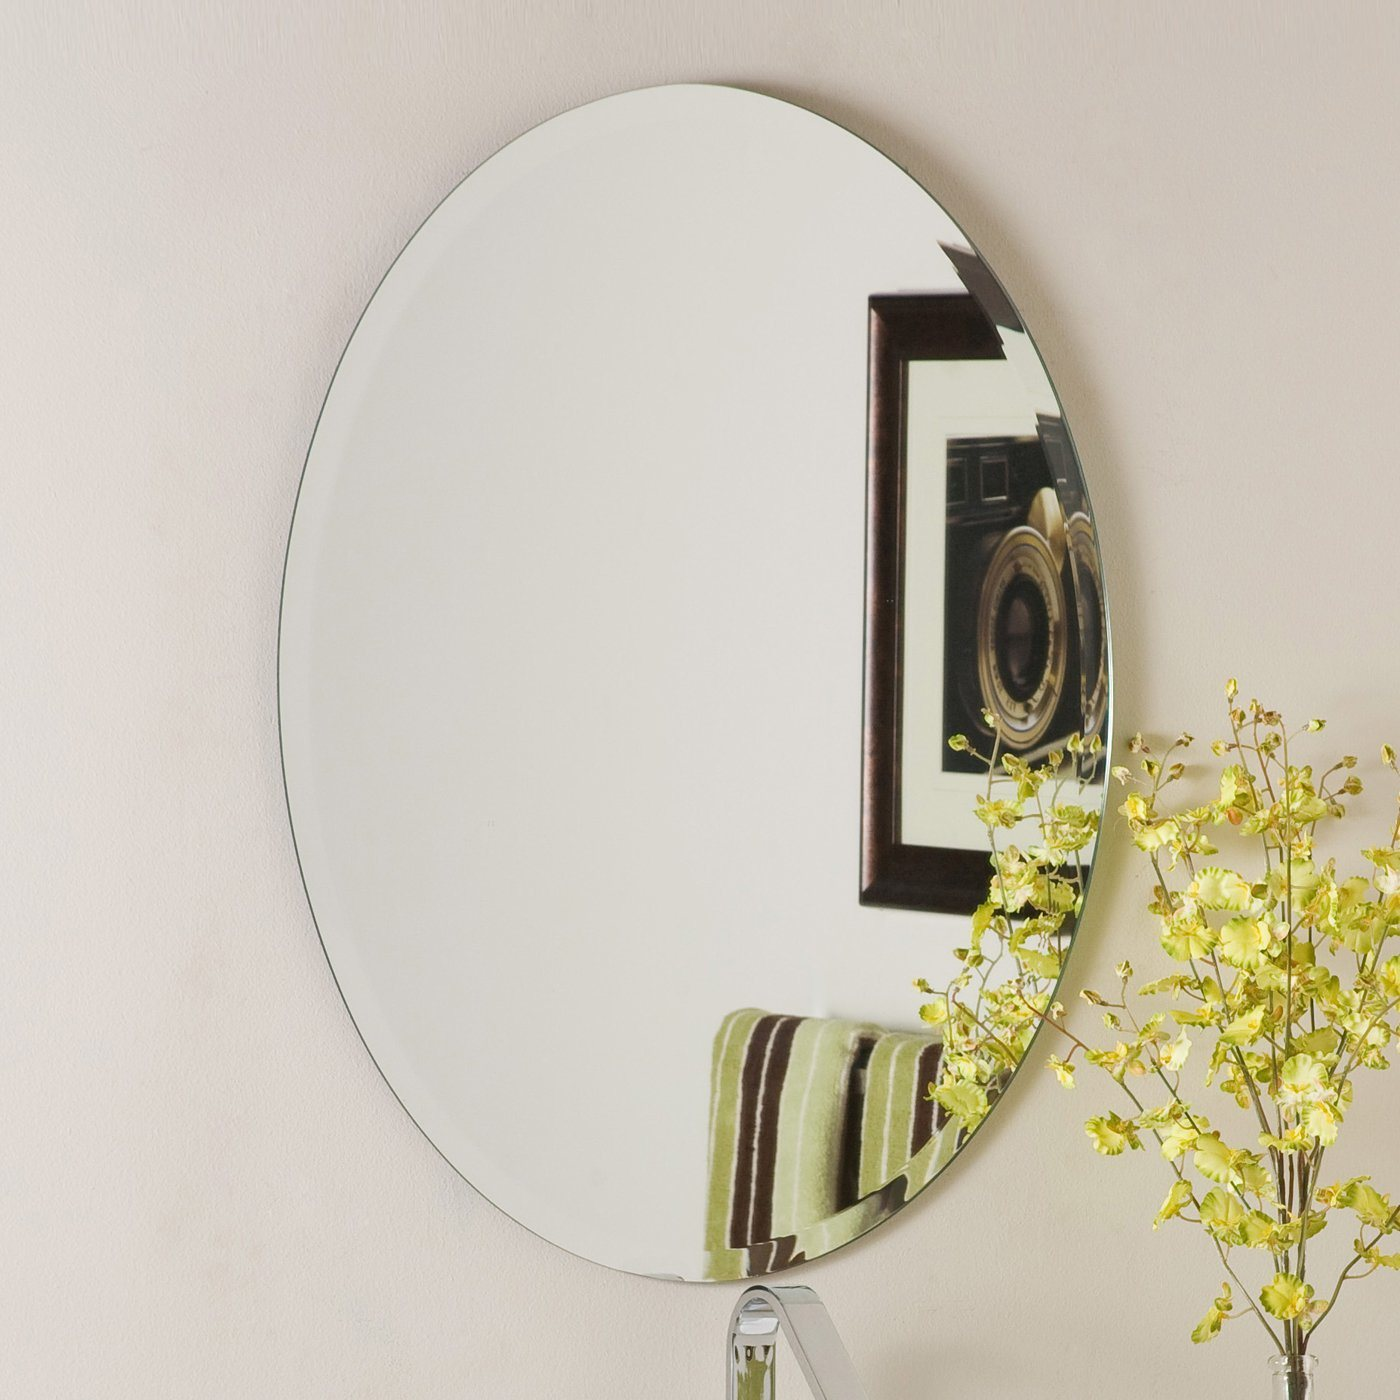 China Qingdao Unframed / Frameless Bathroom Mirrors In Different Shapes,  Made Of High Quality Waterproof Clear Silver Mirror Glass